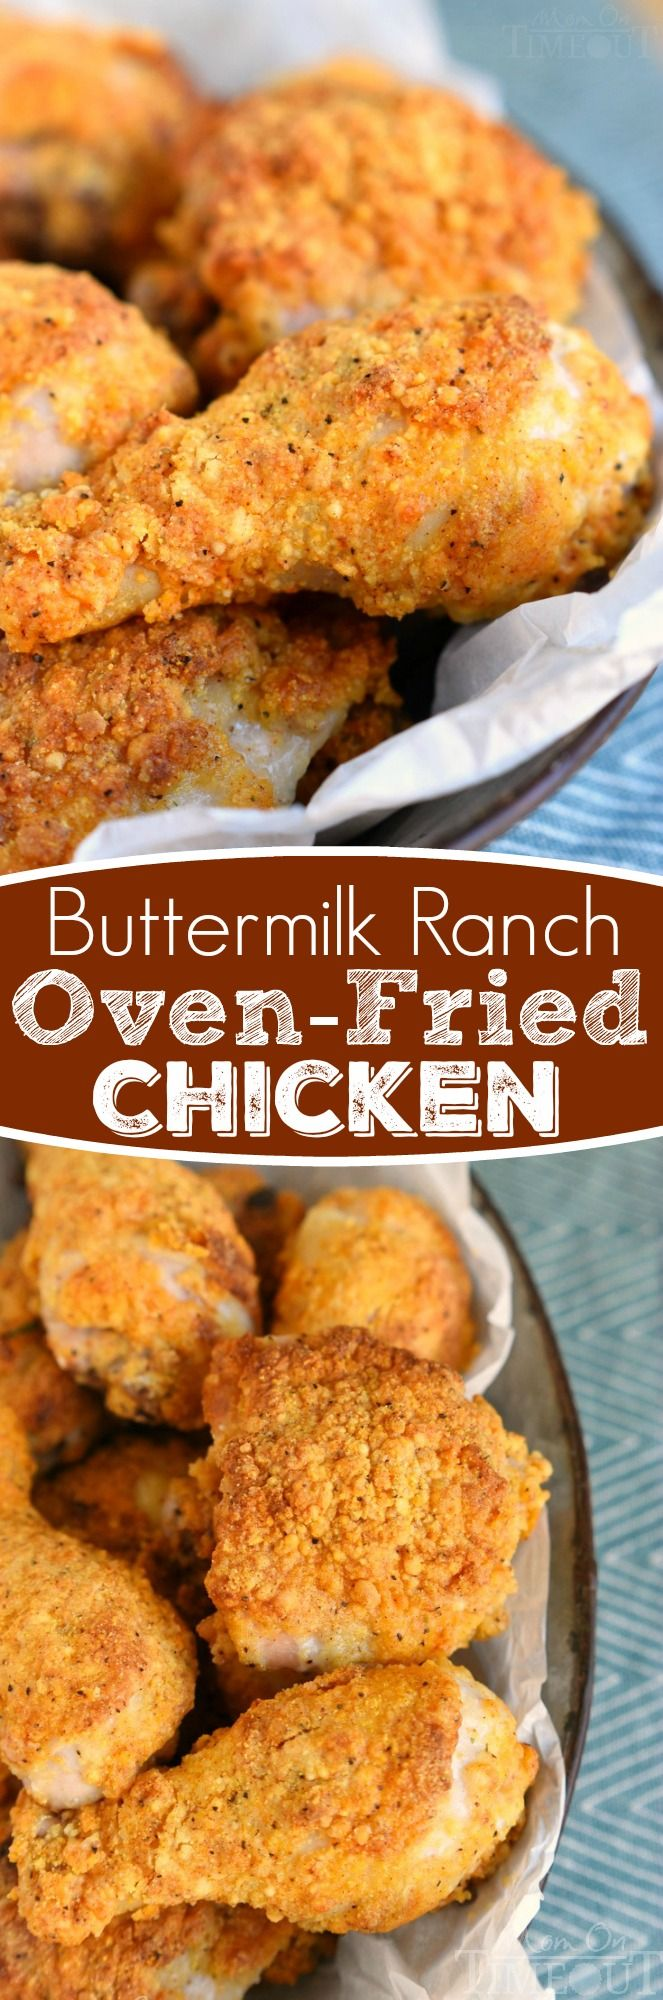 This Buttermilk Ranch Oven Fried Chicken is bound to become a new family favorite! Juicy and moist on the inside and crunchy on the outside!